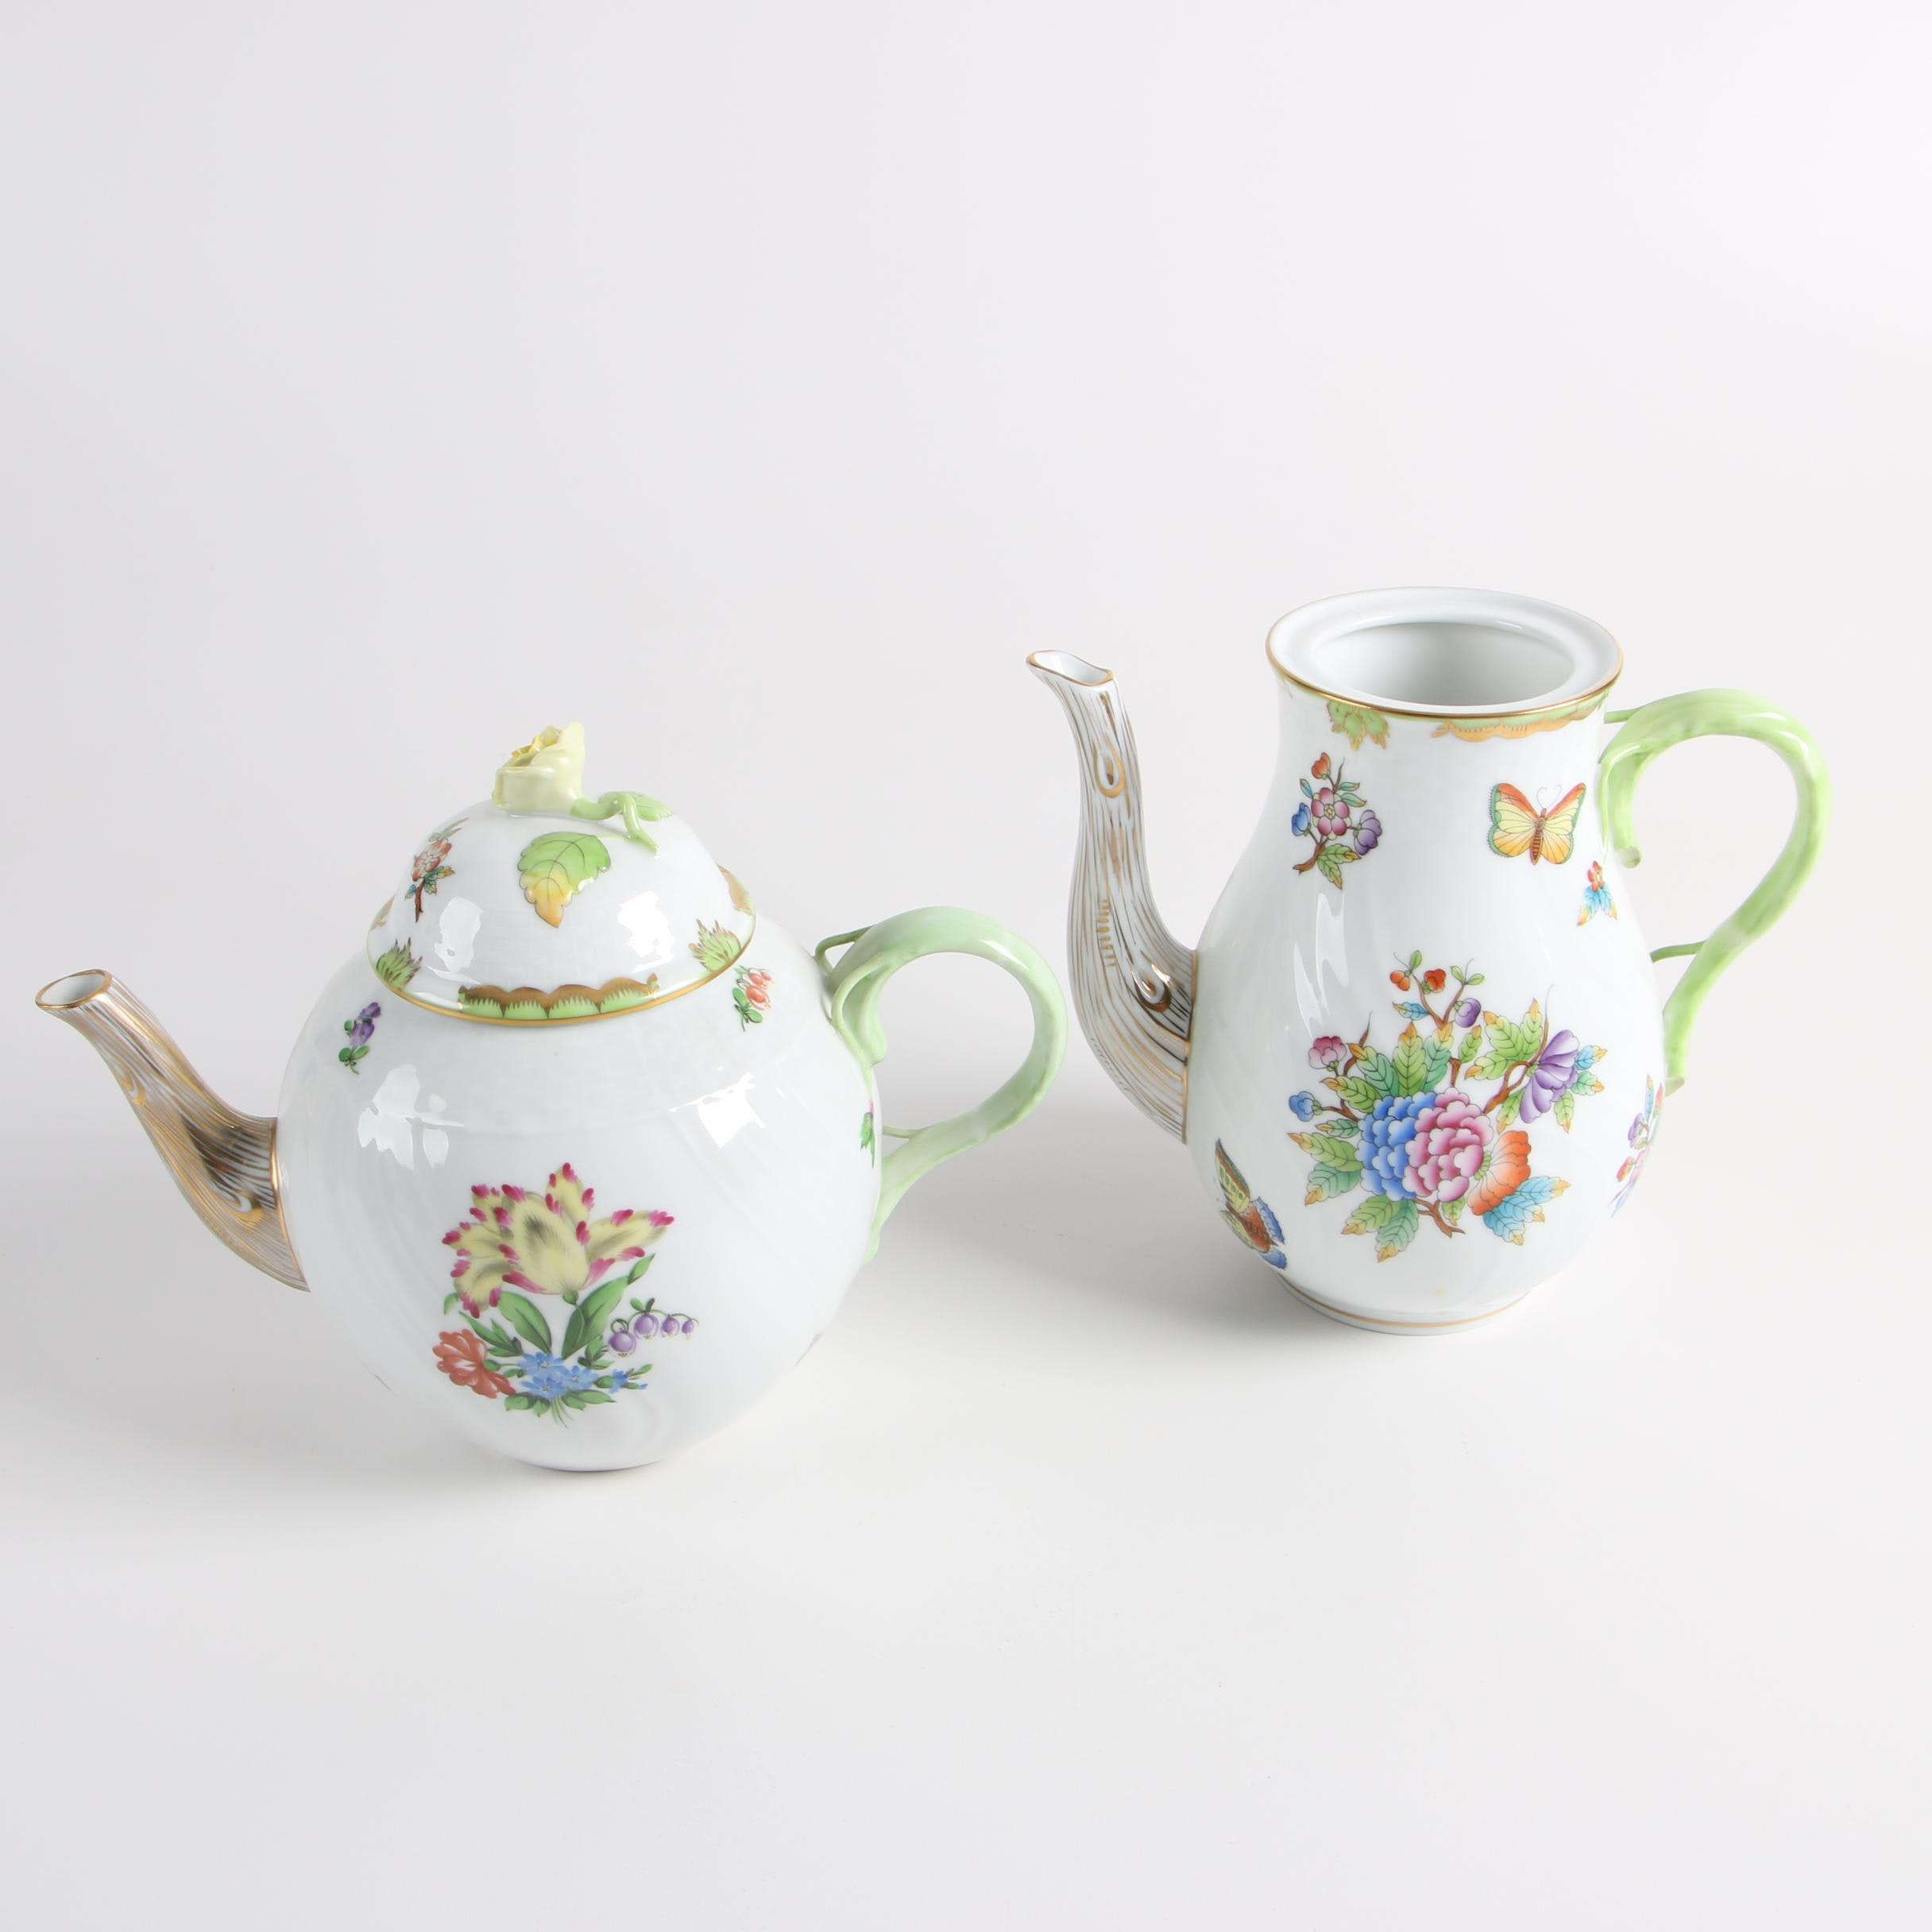 """Herend Hungary """"Printemps"""" Teapot and """"Queen Victoria"""" Porcelain Coffee Pot"""